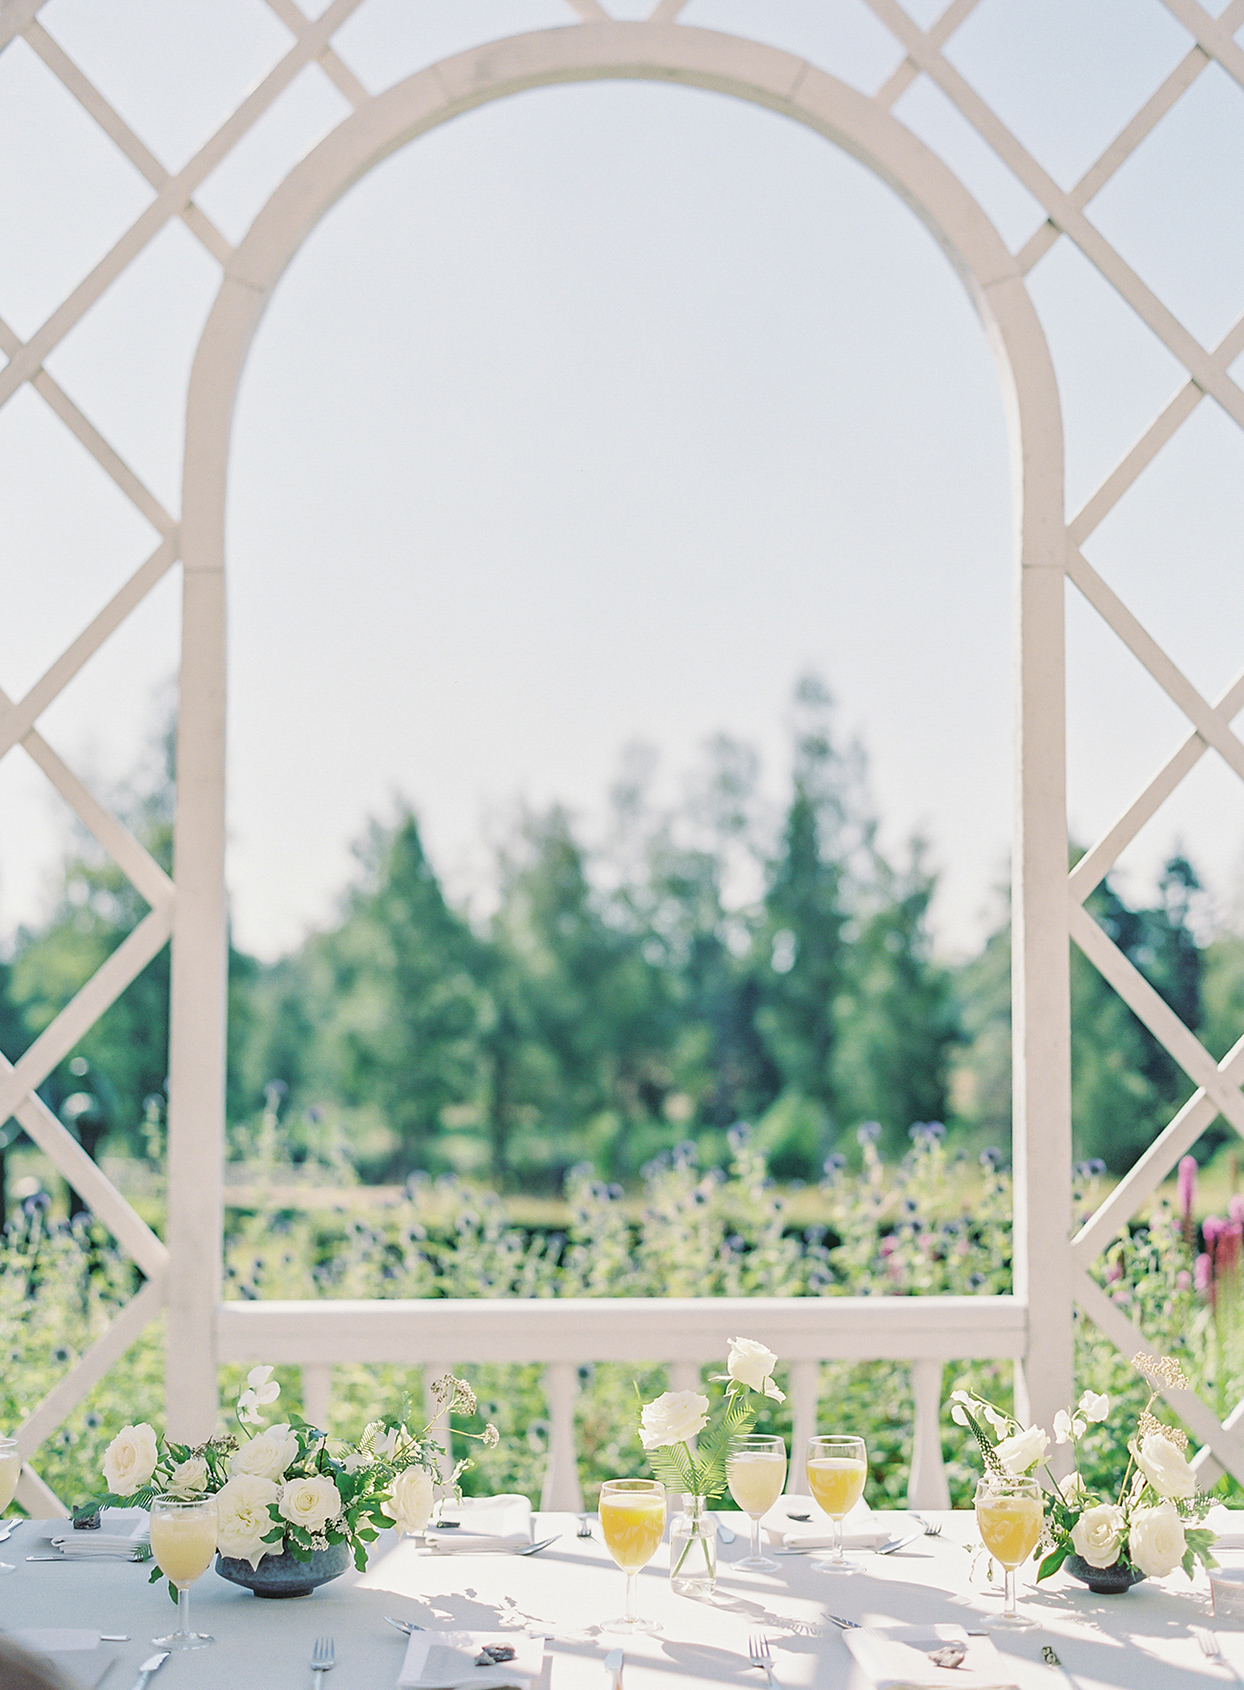 laura alexander wedding brunch table with white trellis